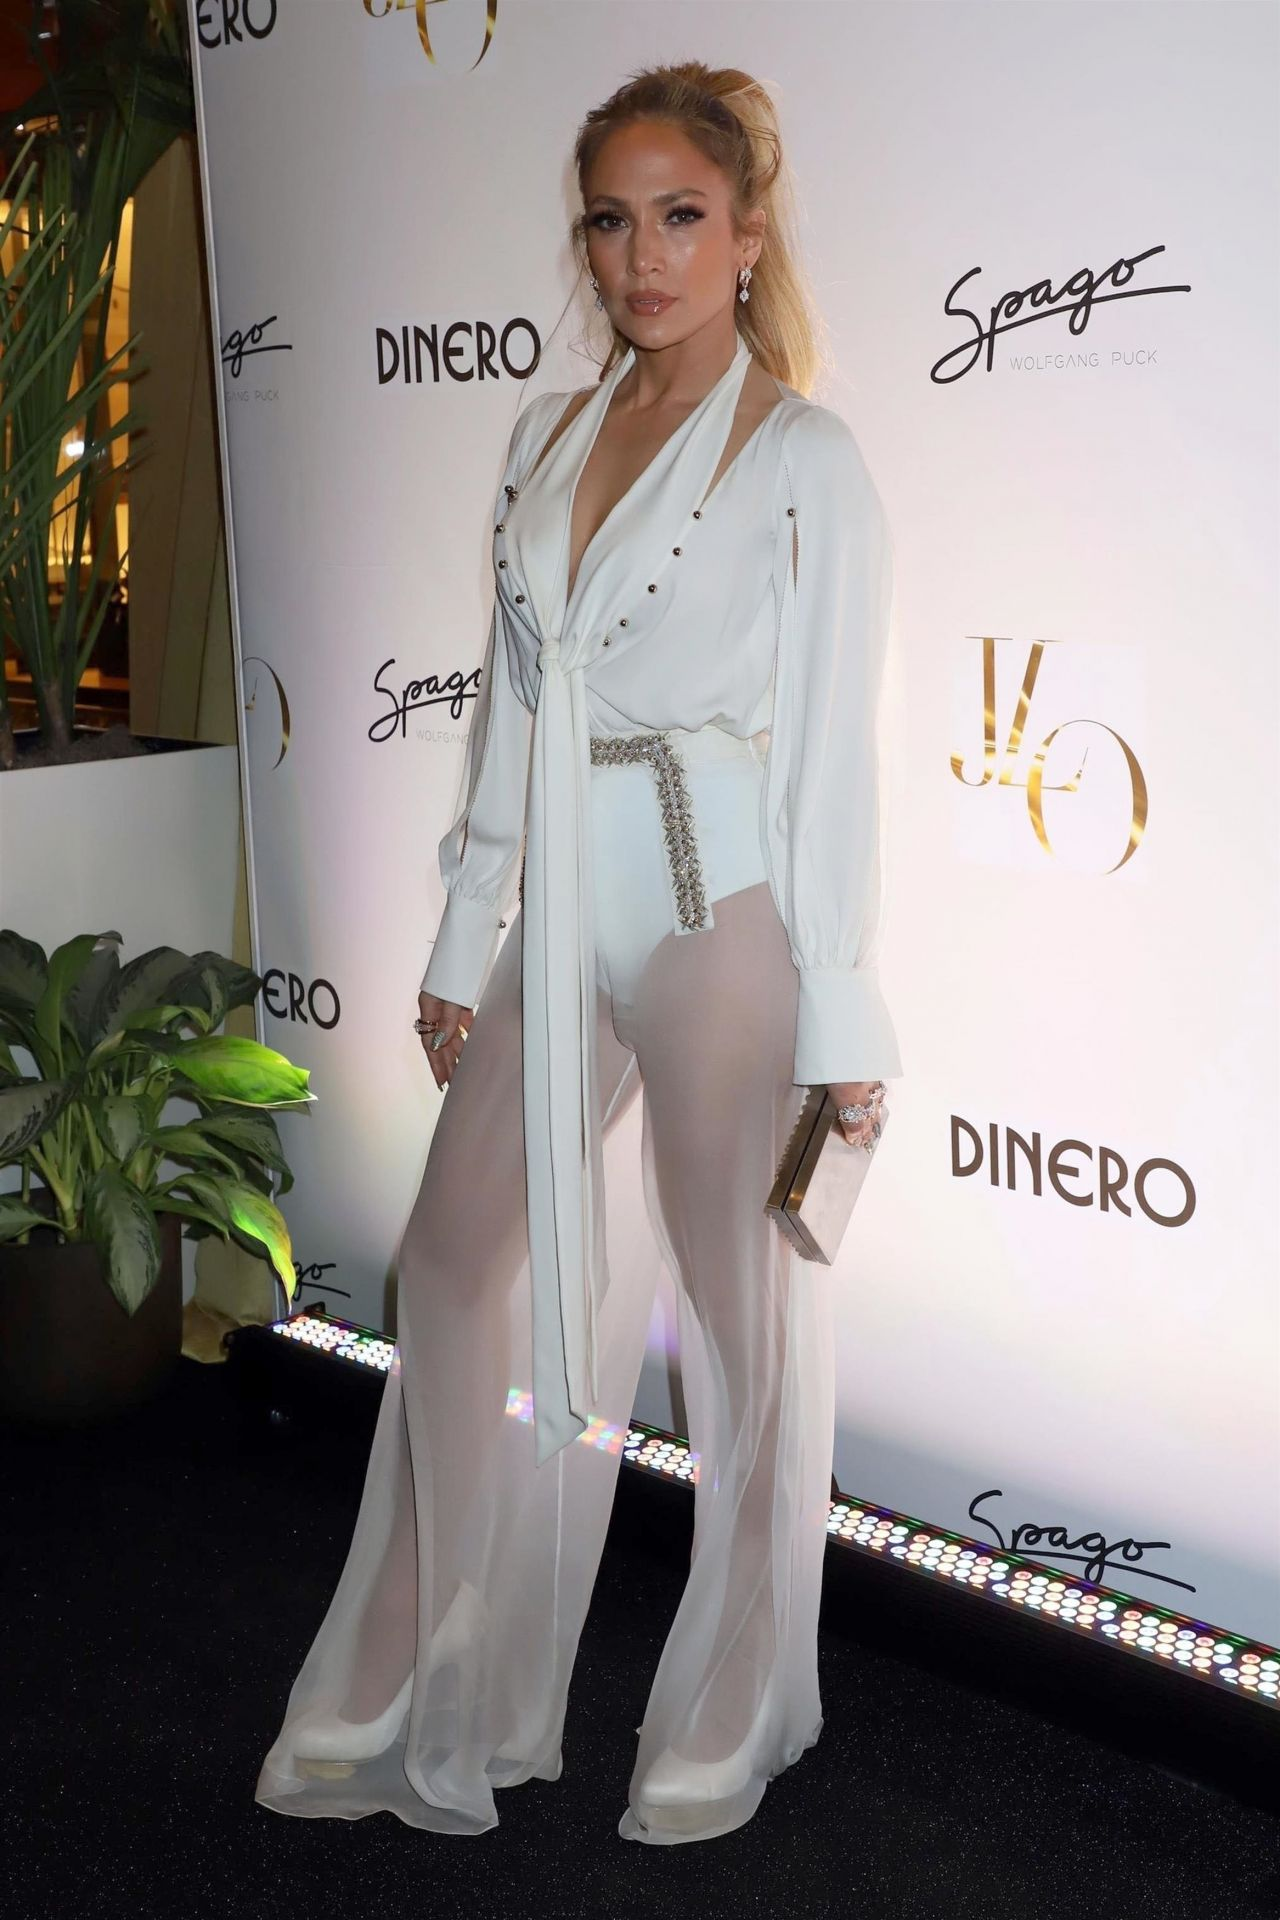 http://celebmafia.com/wp-content/uploads/2018/05/jennifer-lopez-celebrates-release-of-new-single-dinero-in-las-vegas-0.jpg